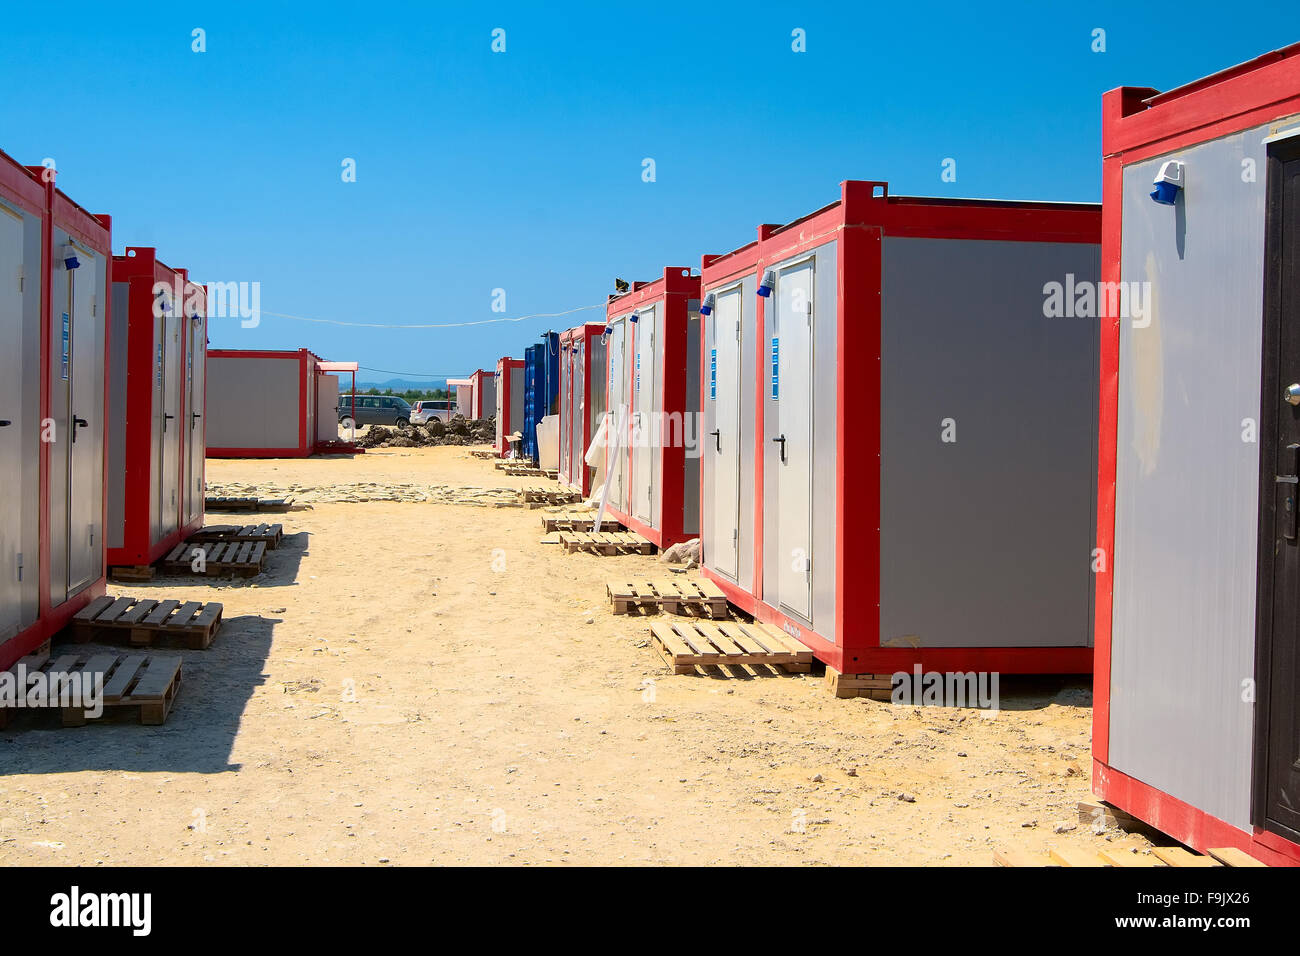 Module for recreation and social needs of the construction site - Stock Image